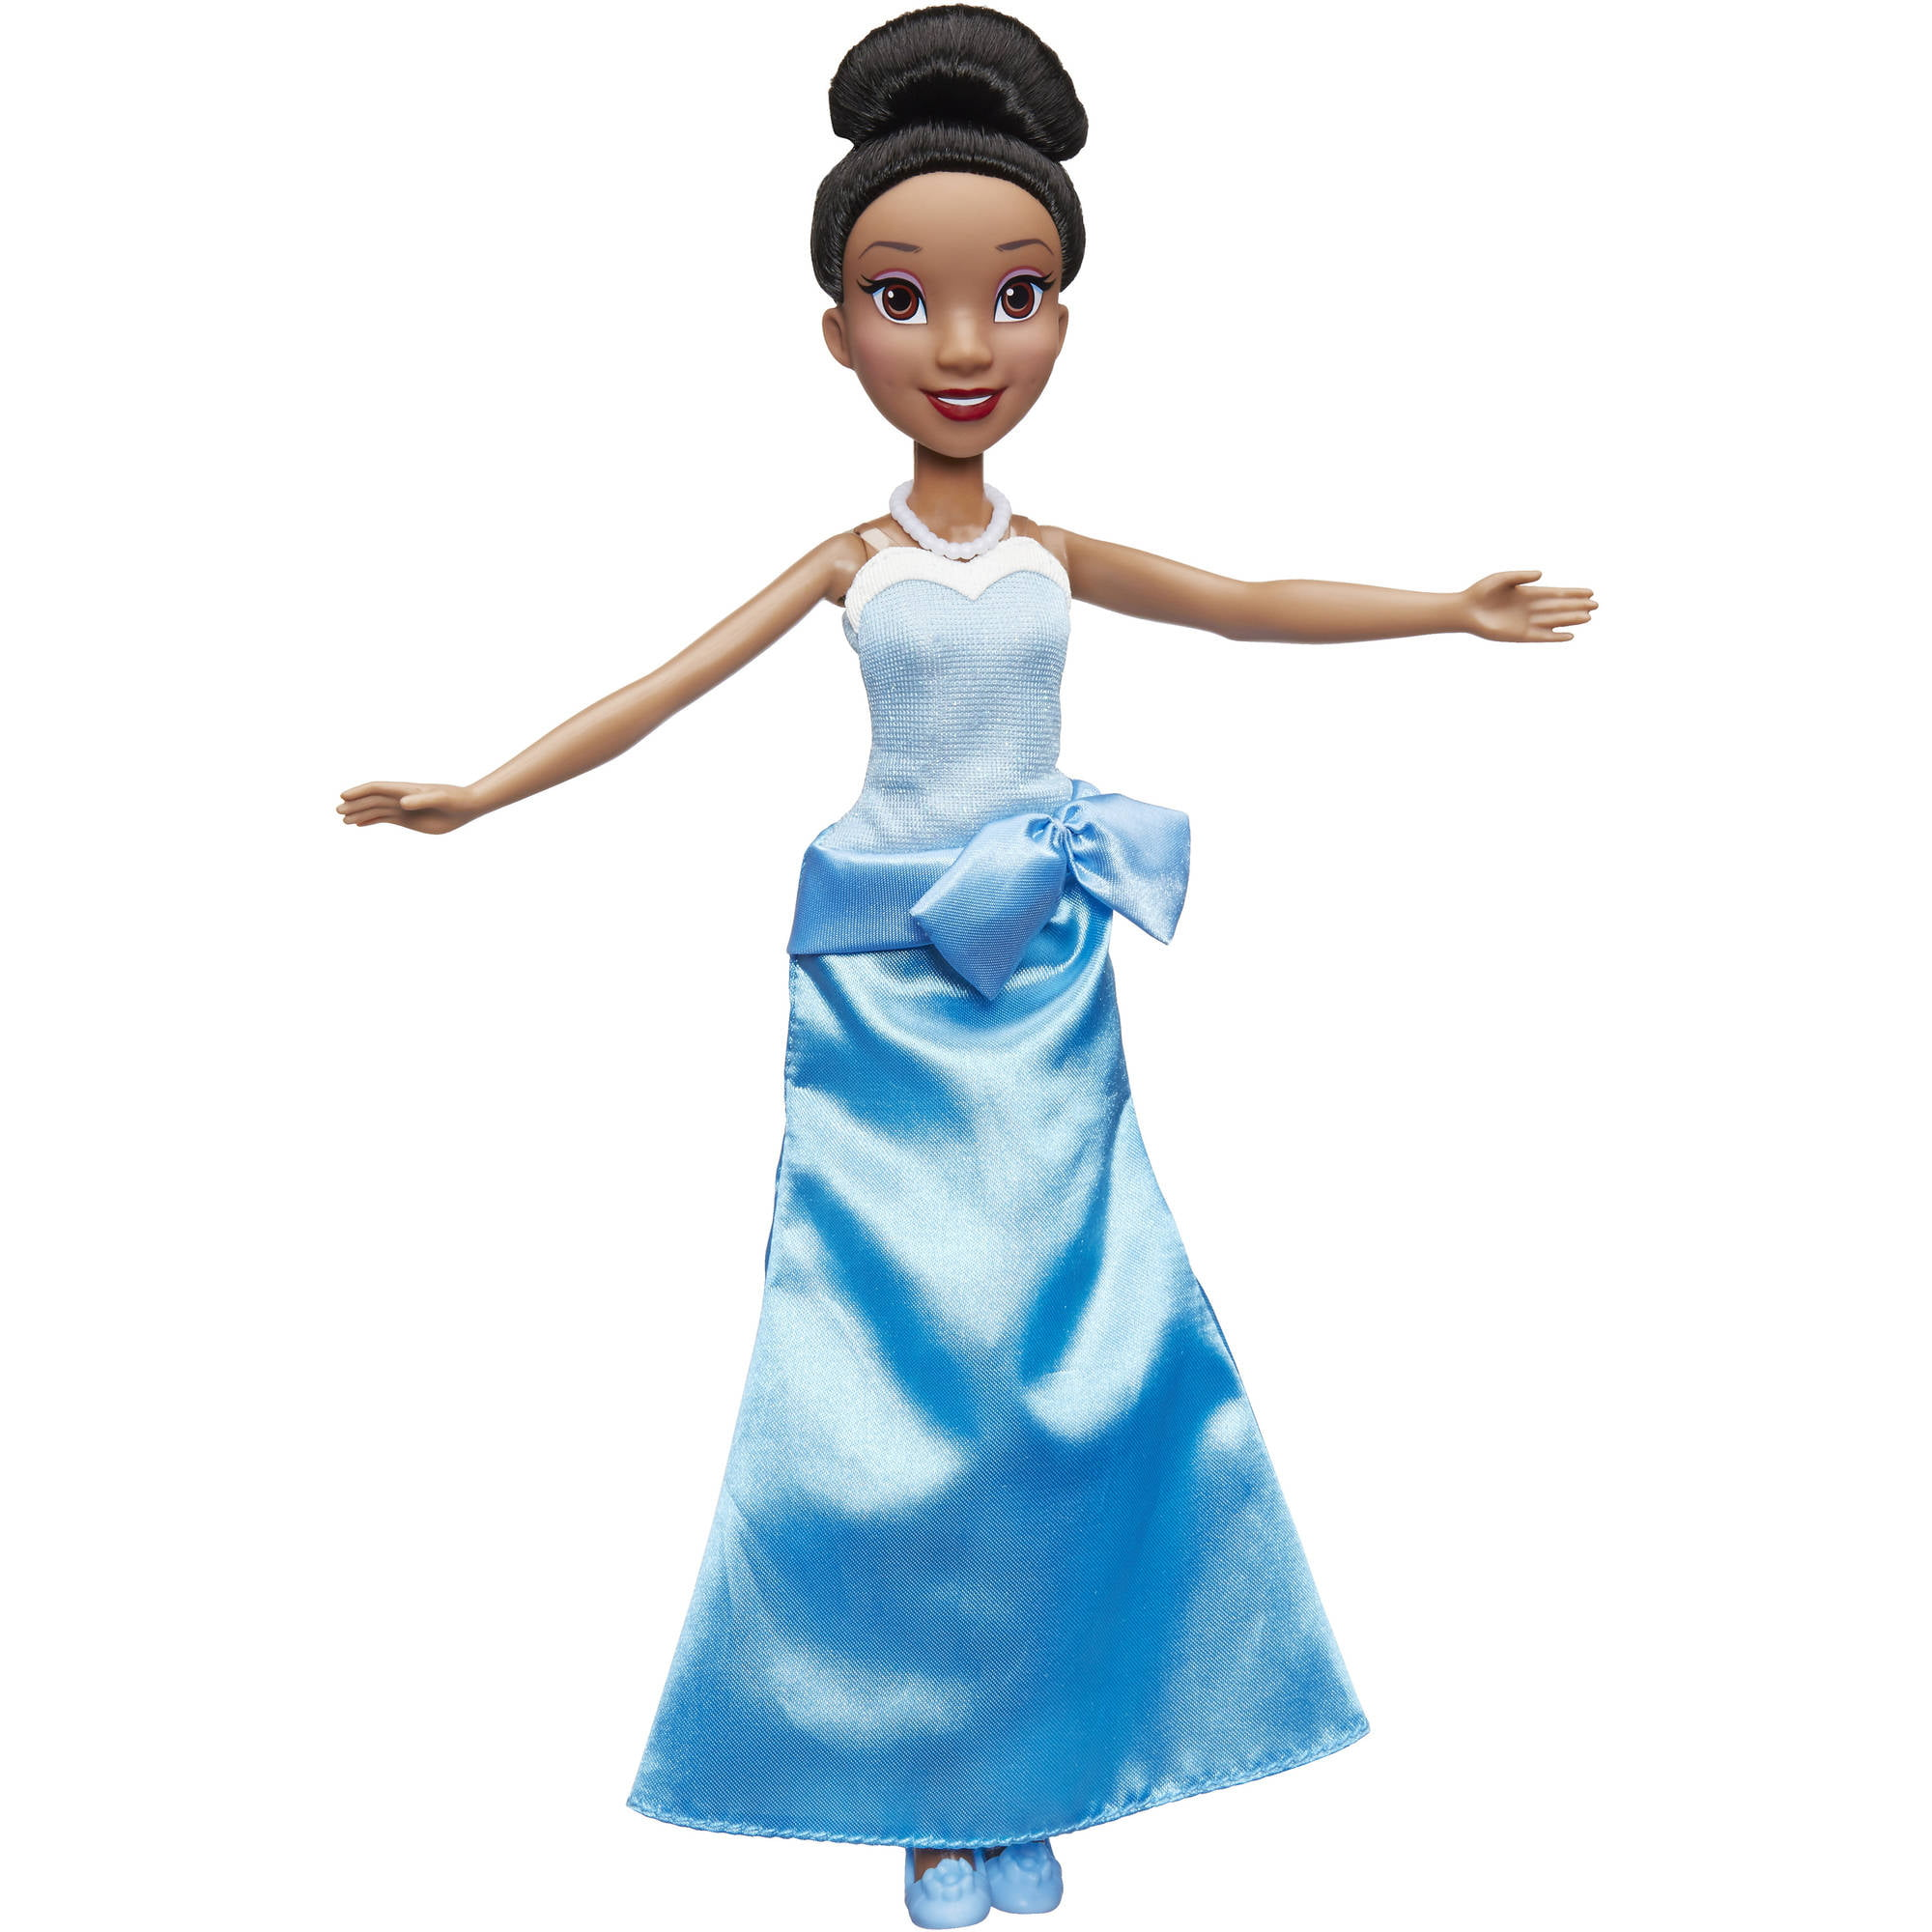 Disney Princess Tiana Doll 4 pc Carded Pack  Walmartcom